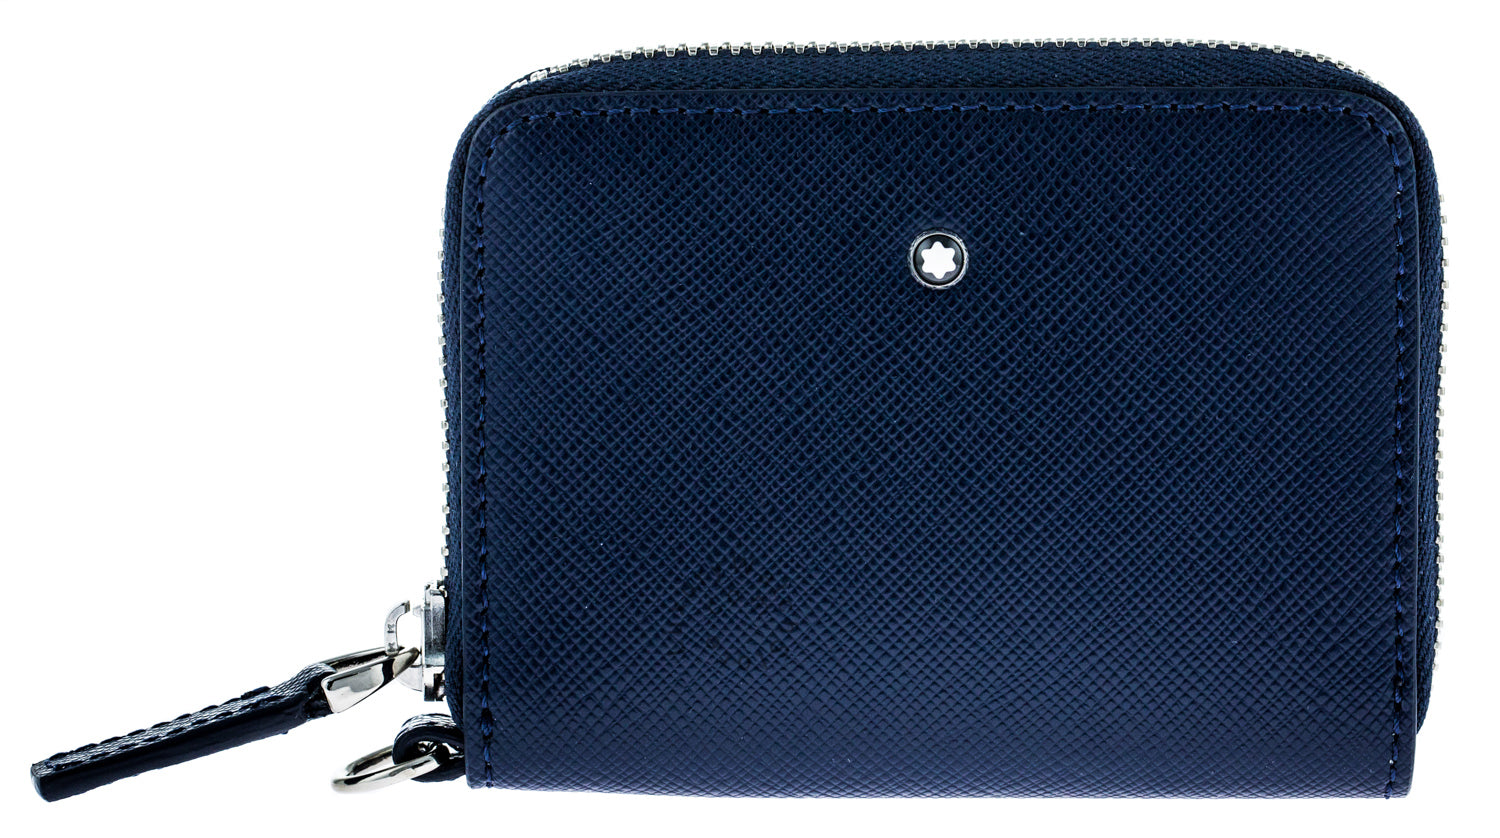 Montblanc Sartorial Indigo Leather Coin Case Zip View Carry Me 116370